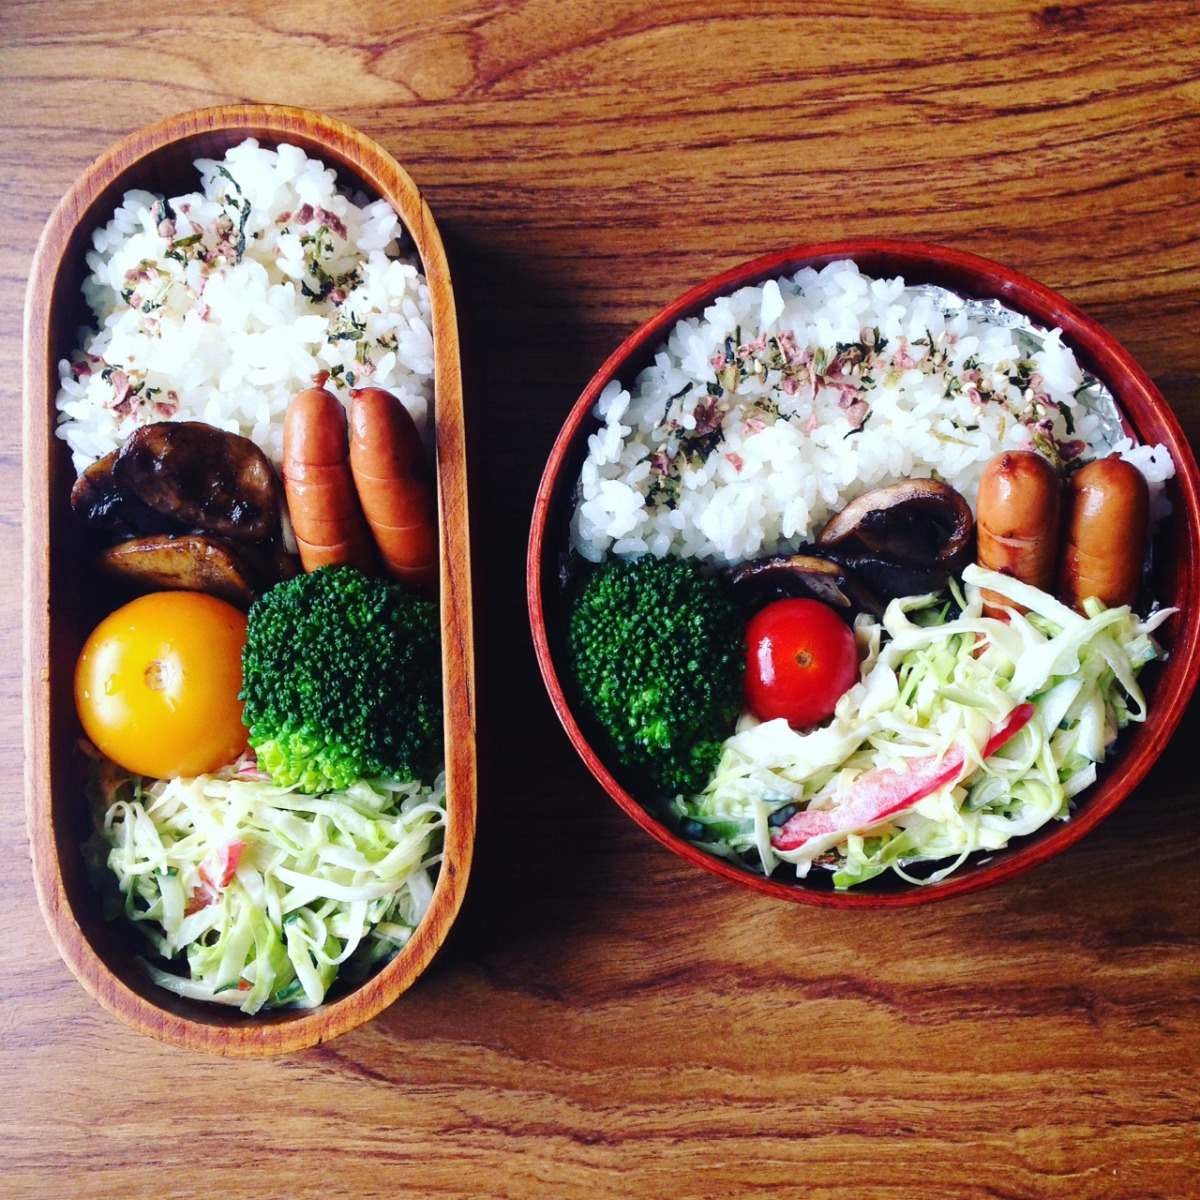 5 tips to have a sustainable bento life